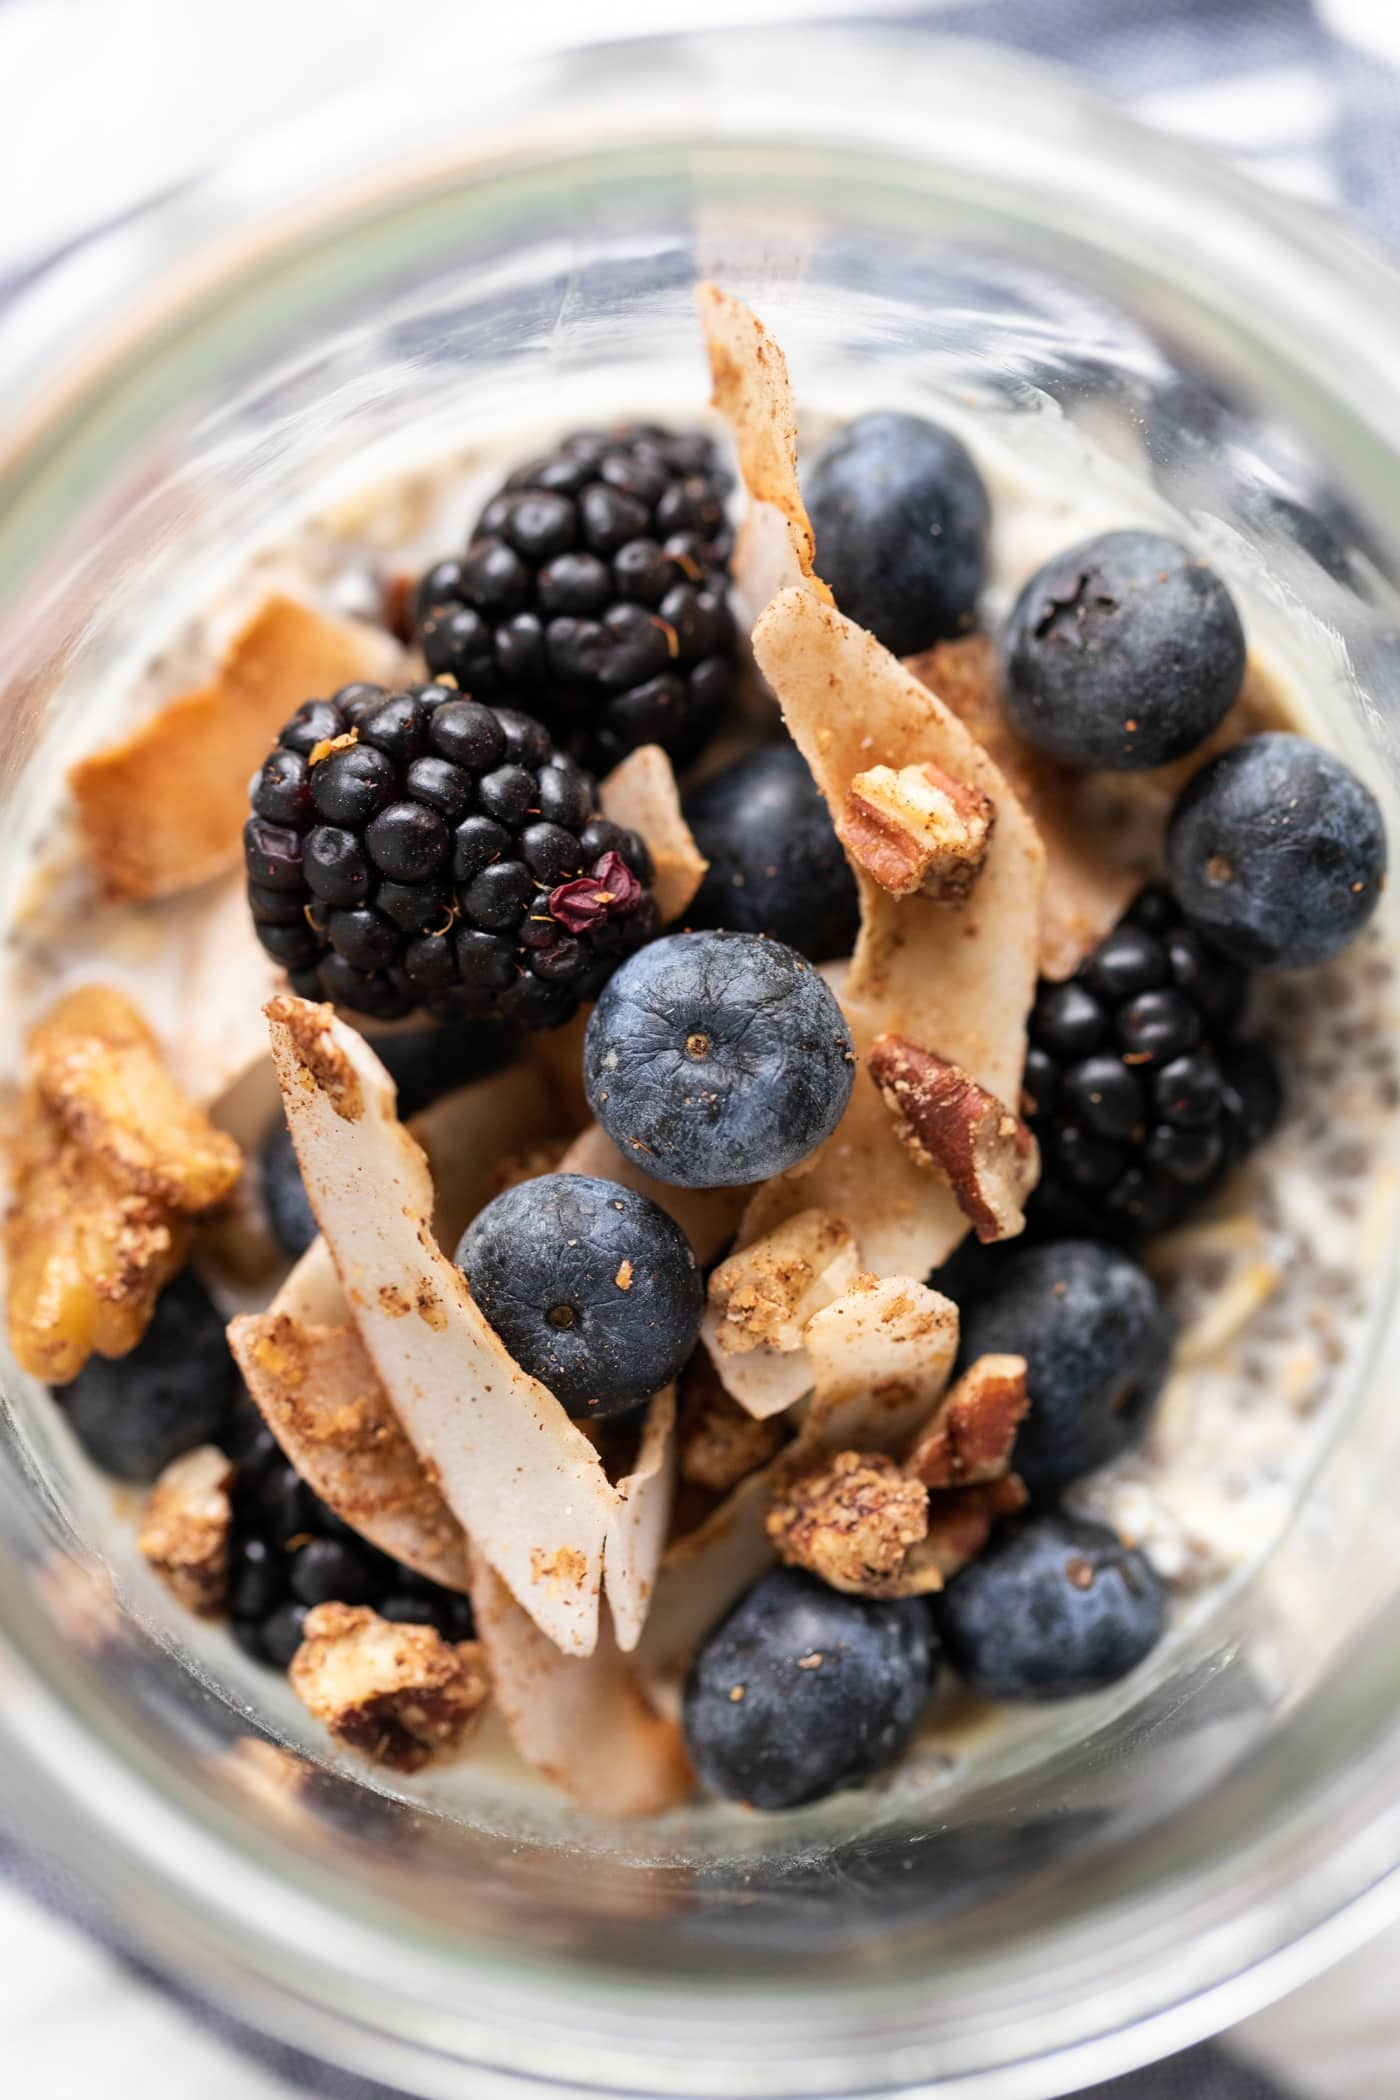 Blueberries, blackberries, and granola sitting on top of container of overnight oats